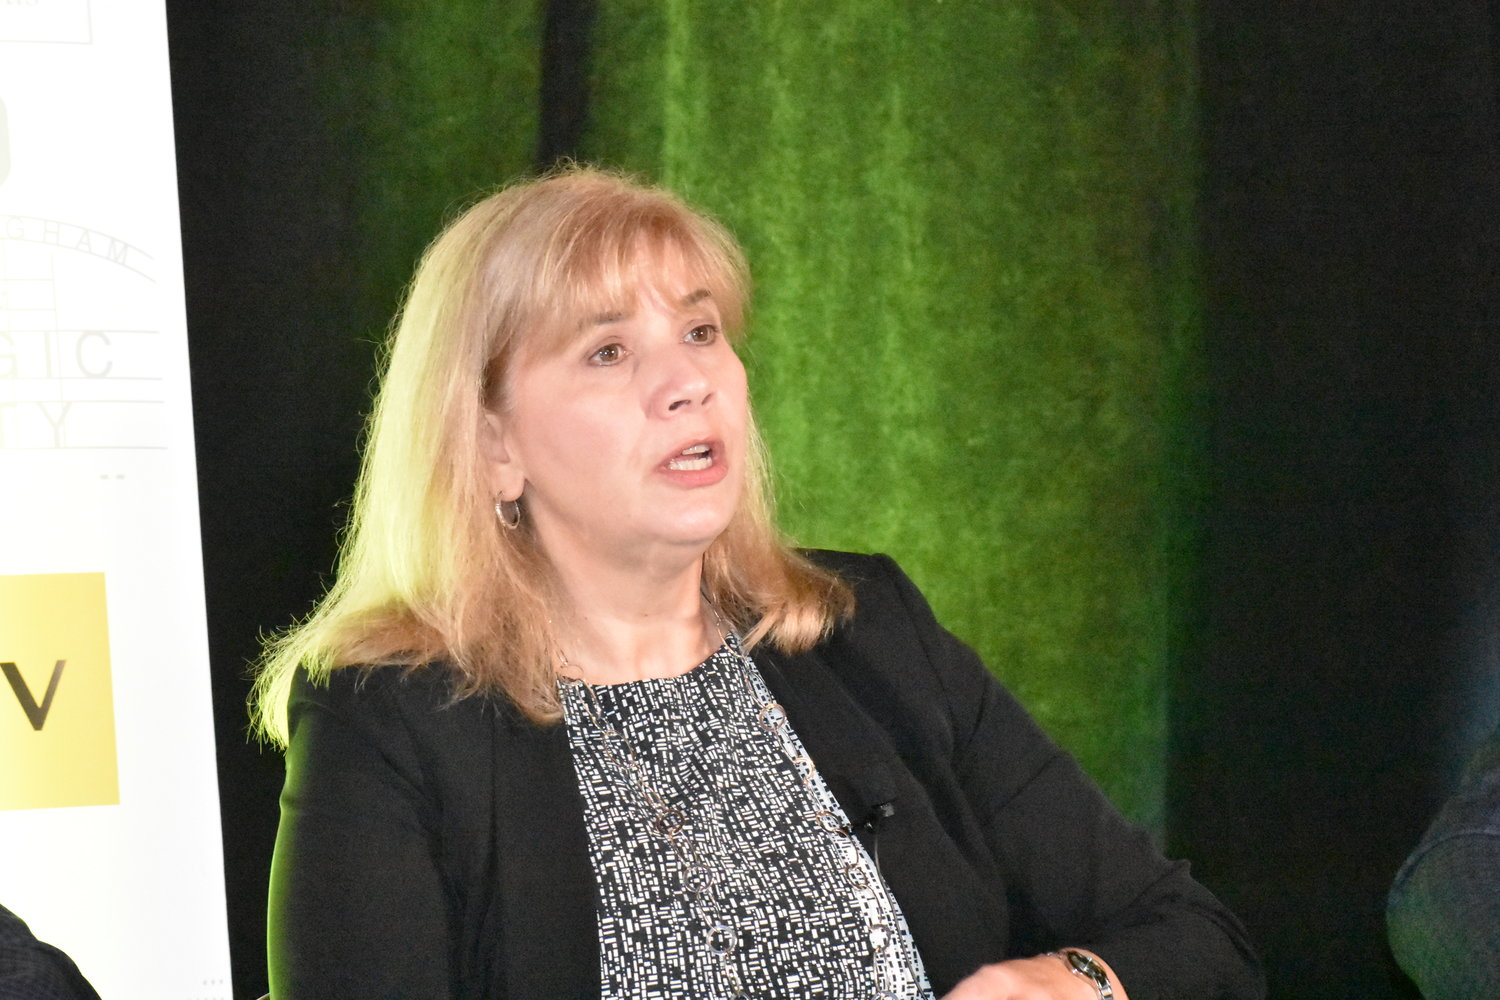 Judy Adams, vice president of marketing for the Alabama State Port Authority in Mobile, spoke as part of an an hour-long panel discussion in Jasper Thursday on the state coal industry.